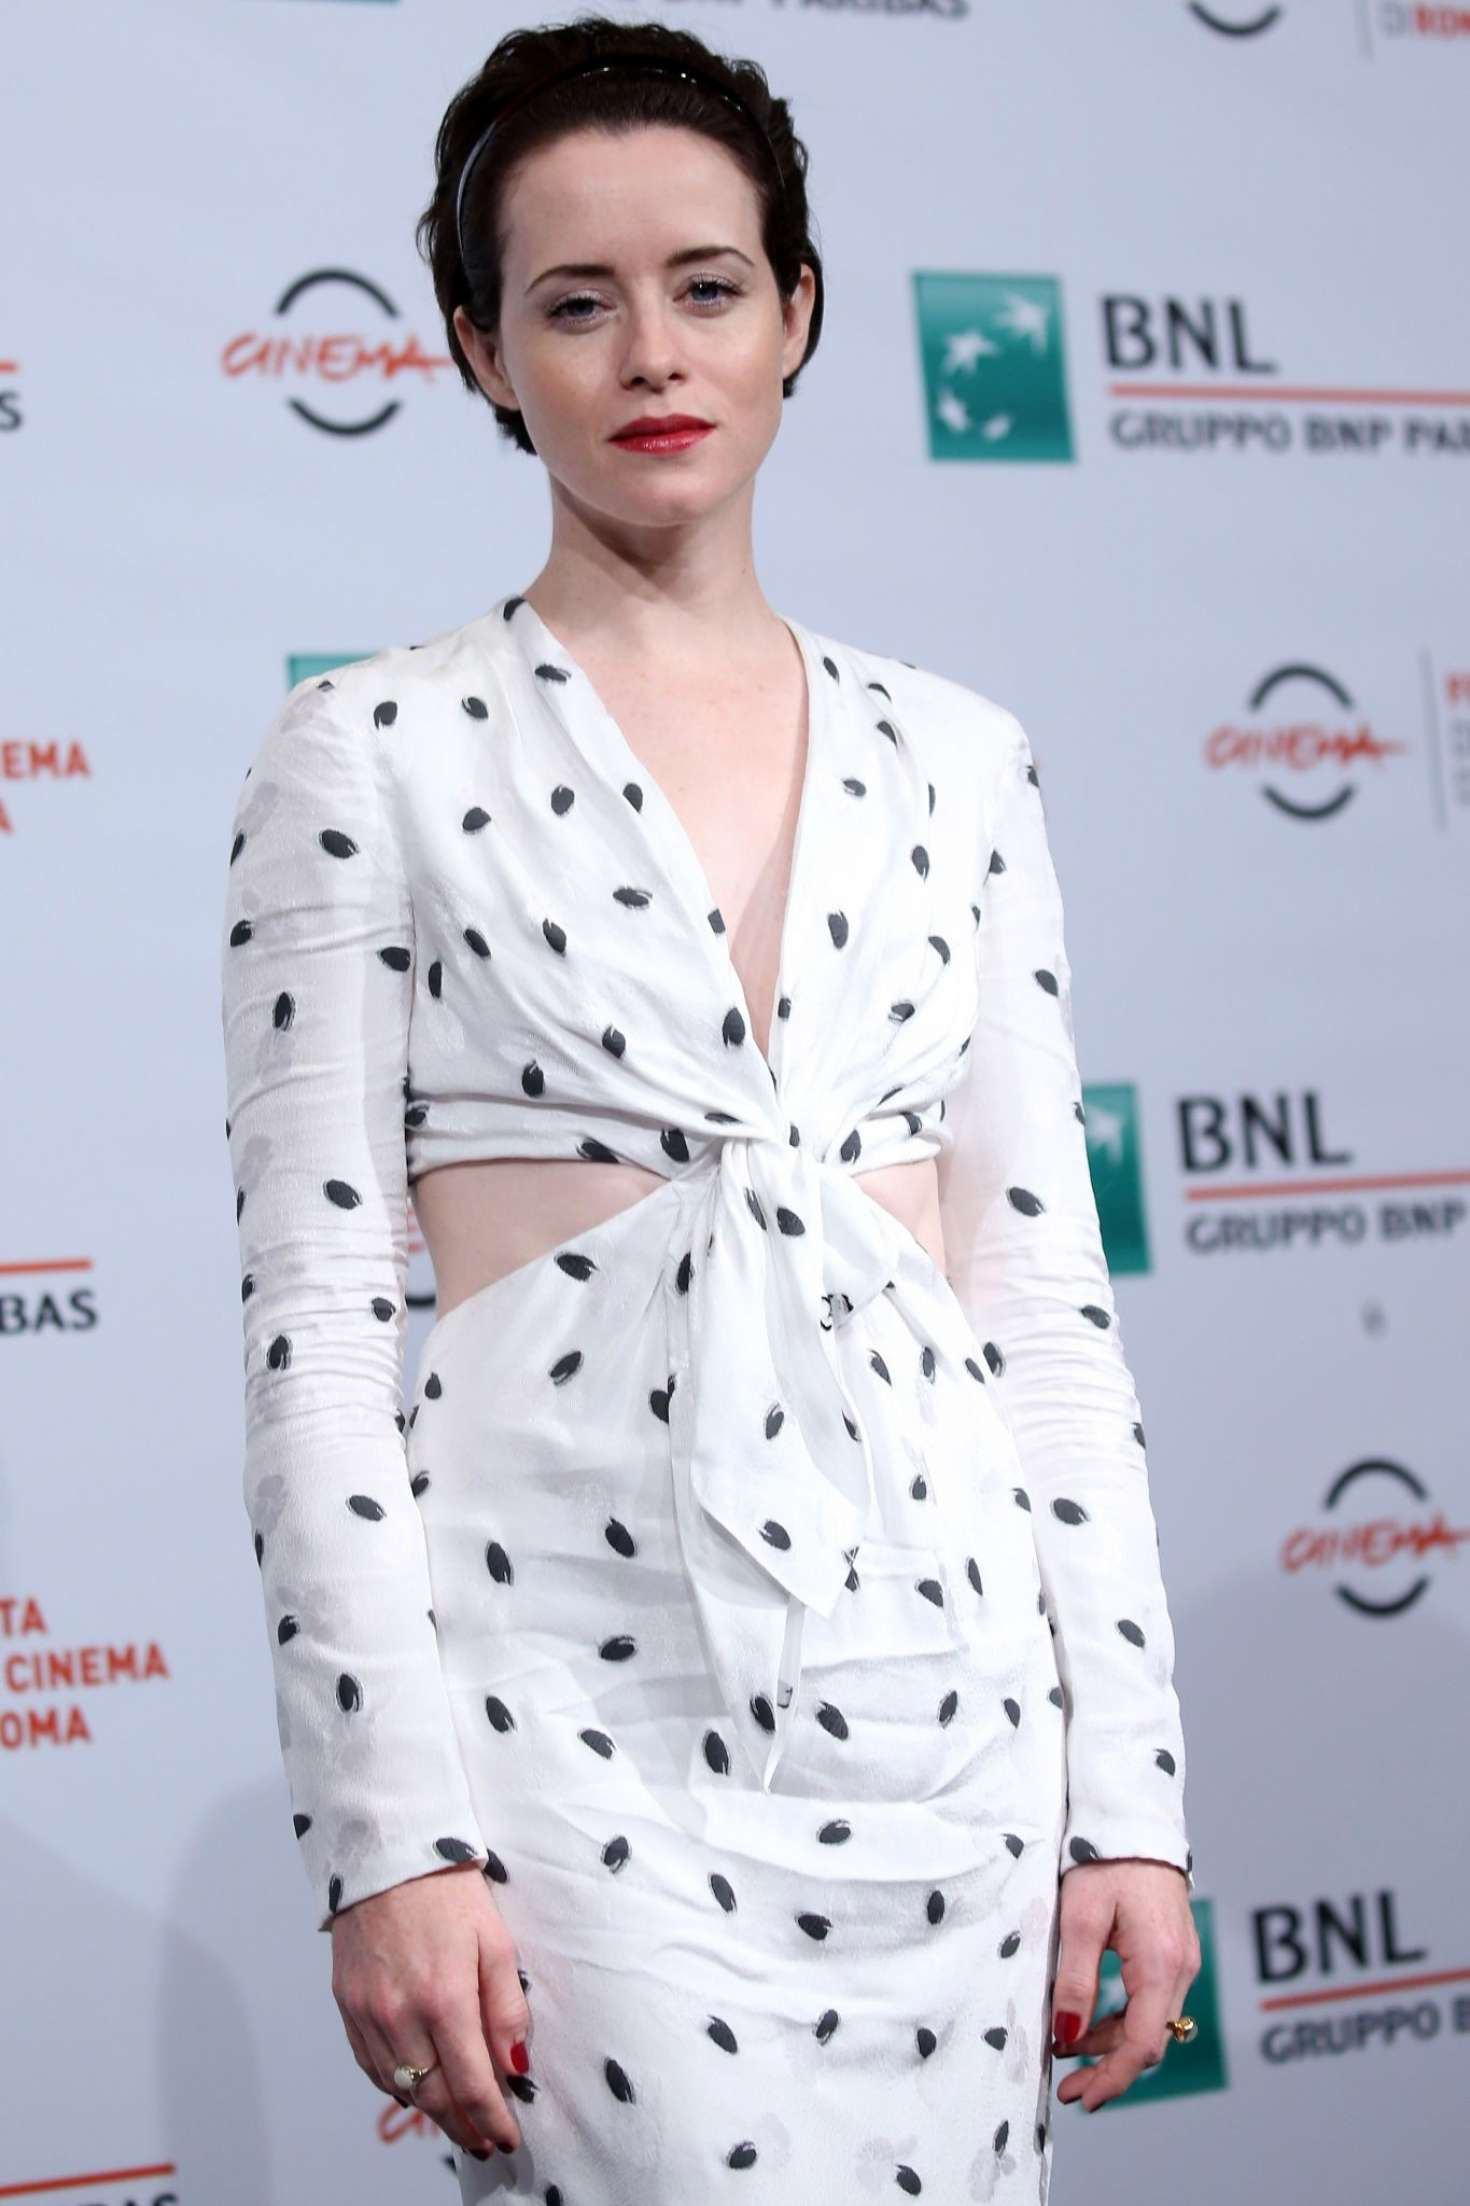 Claire Foy - 'The Girl In The Spider's Web' Photocall in Rome